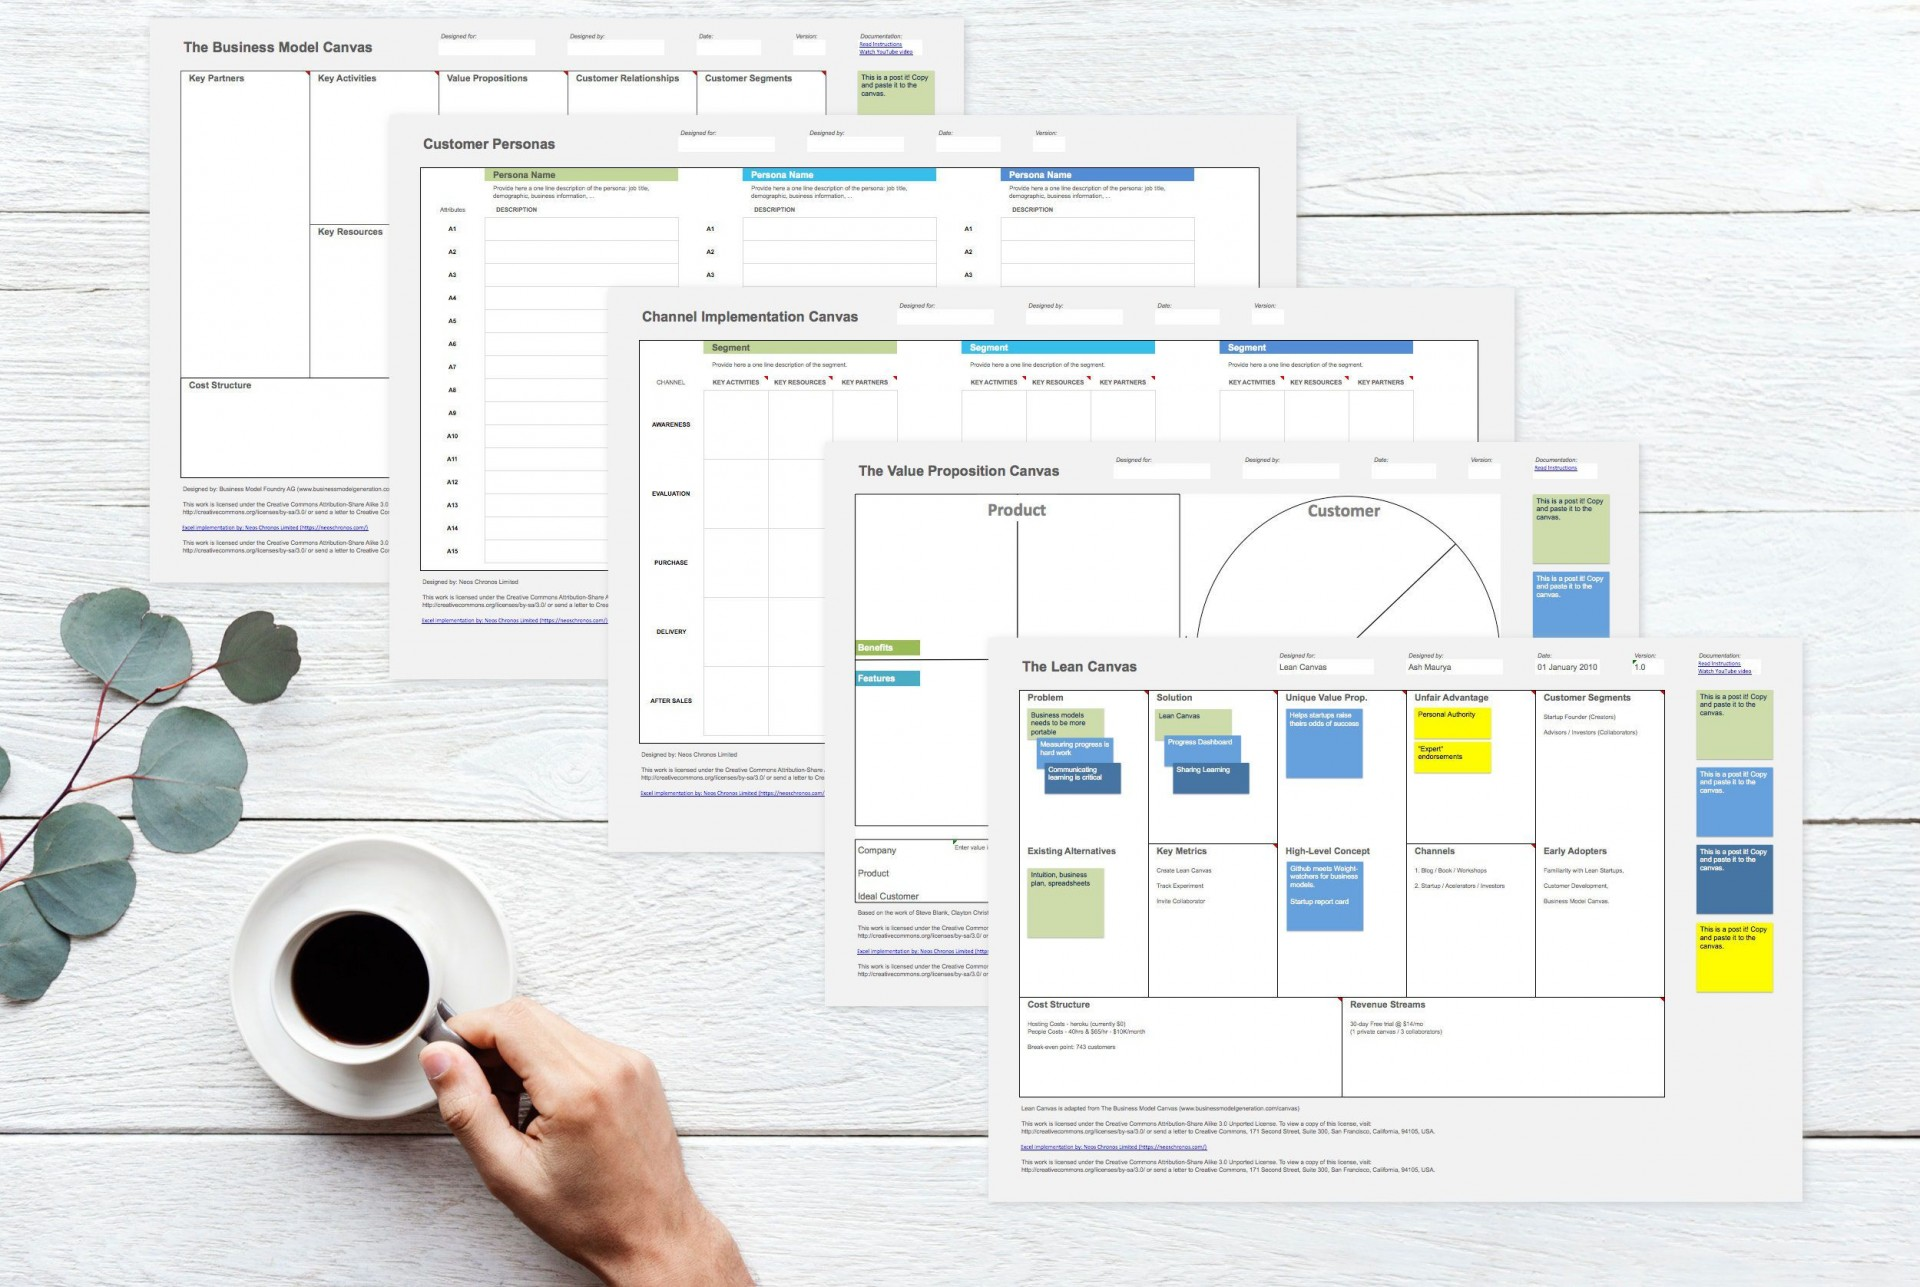 008 Fascinating Busines Model Generation Template Excel Example 1920